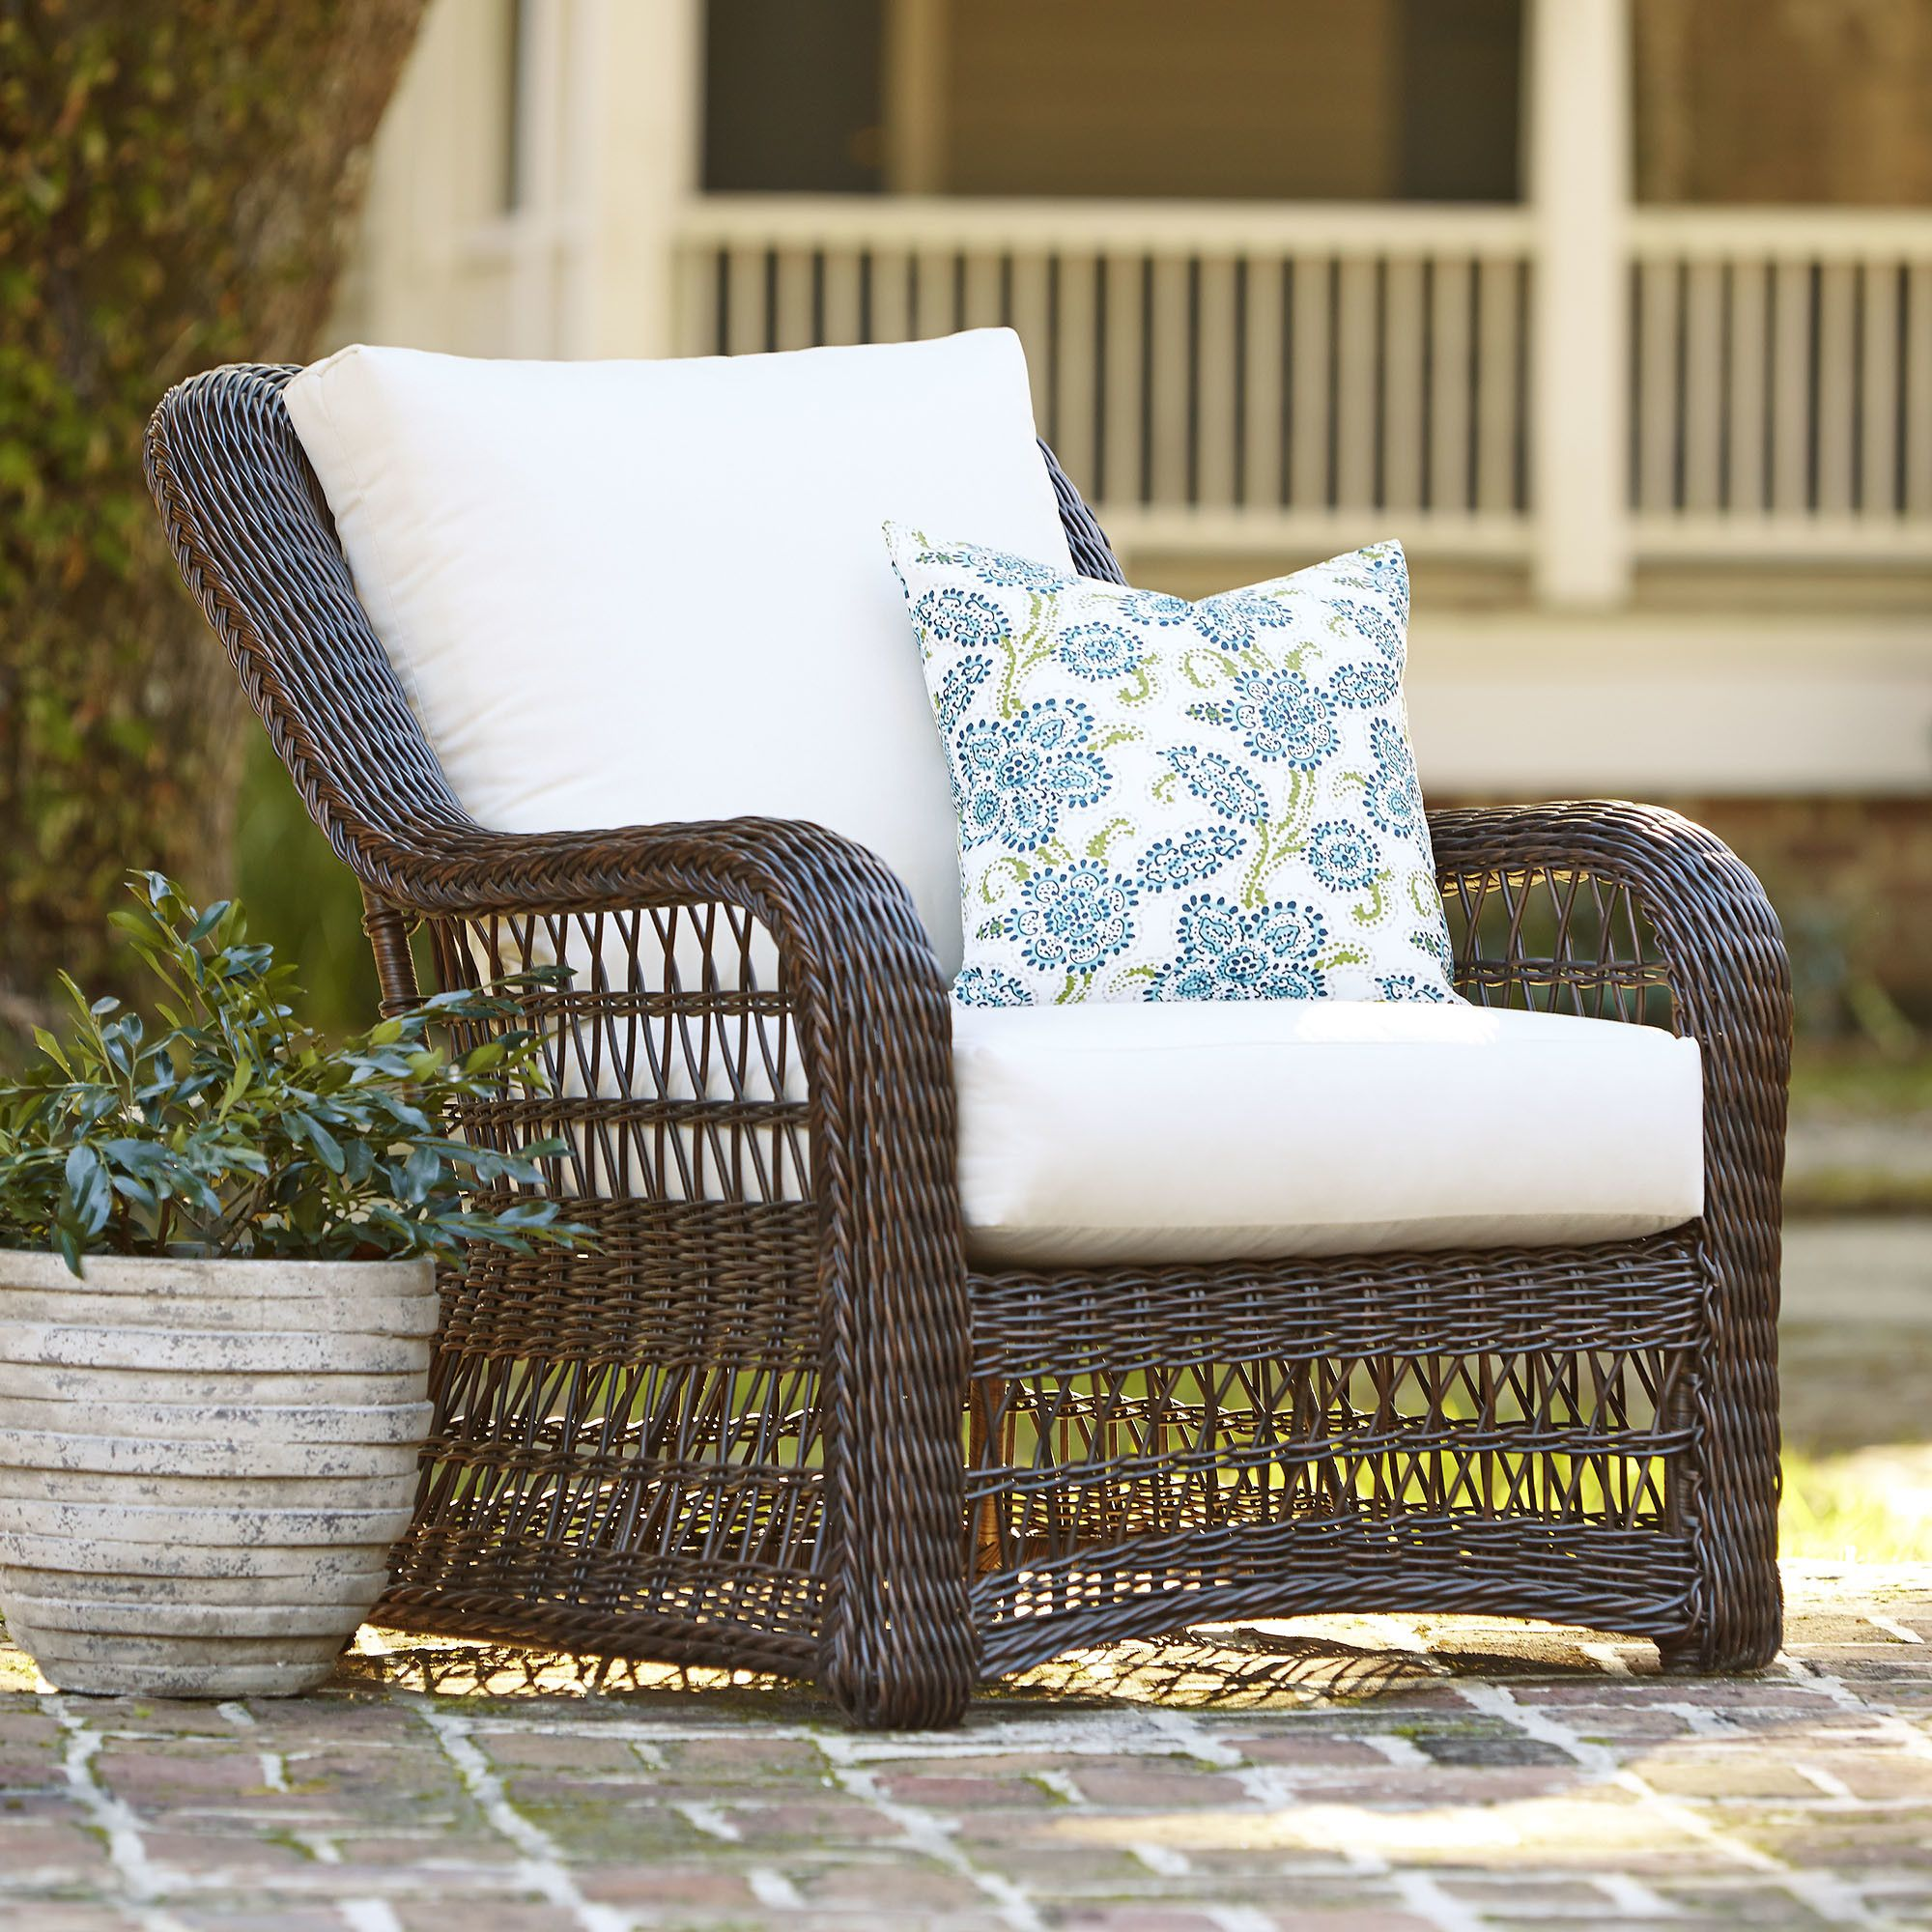 Rosemead wicker chair with sunbrella cushions with updated wicker styling for breezy island appeal the rosemead chair features smooth rounded arms and